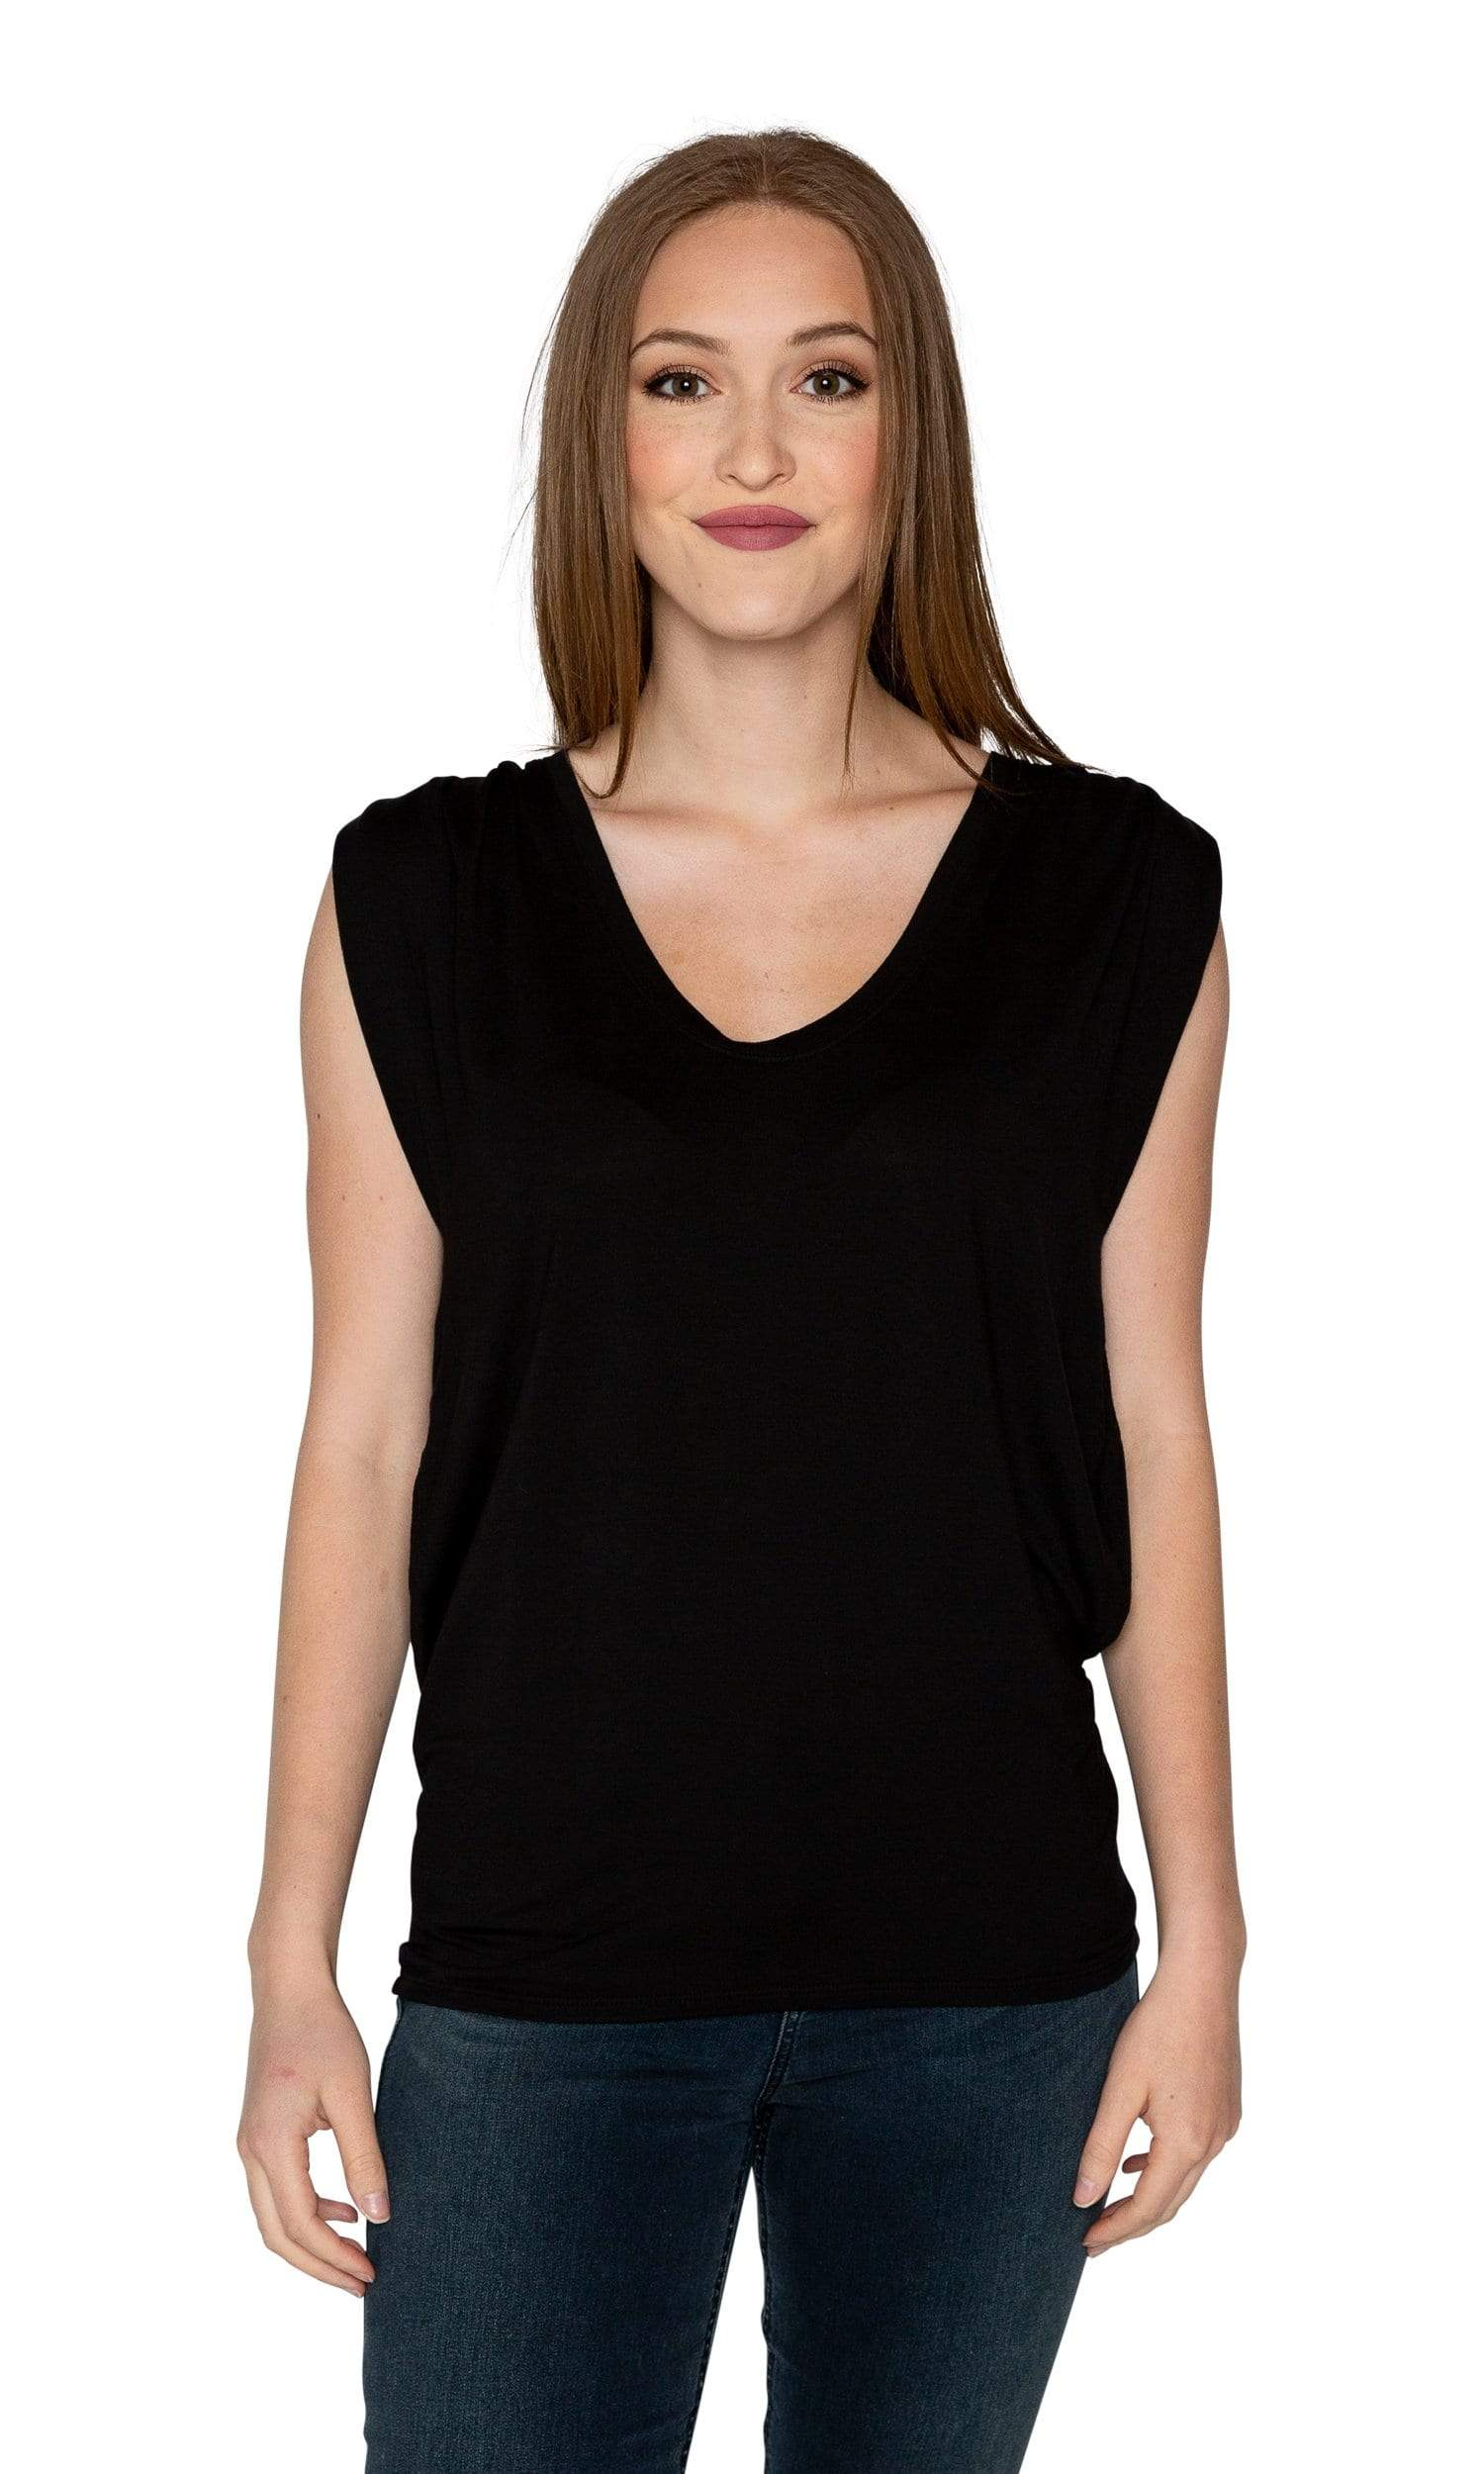 Velvet by Graham & Spencer Anaya Modal Knit Top